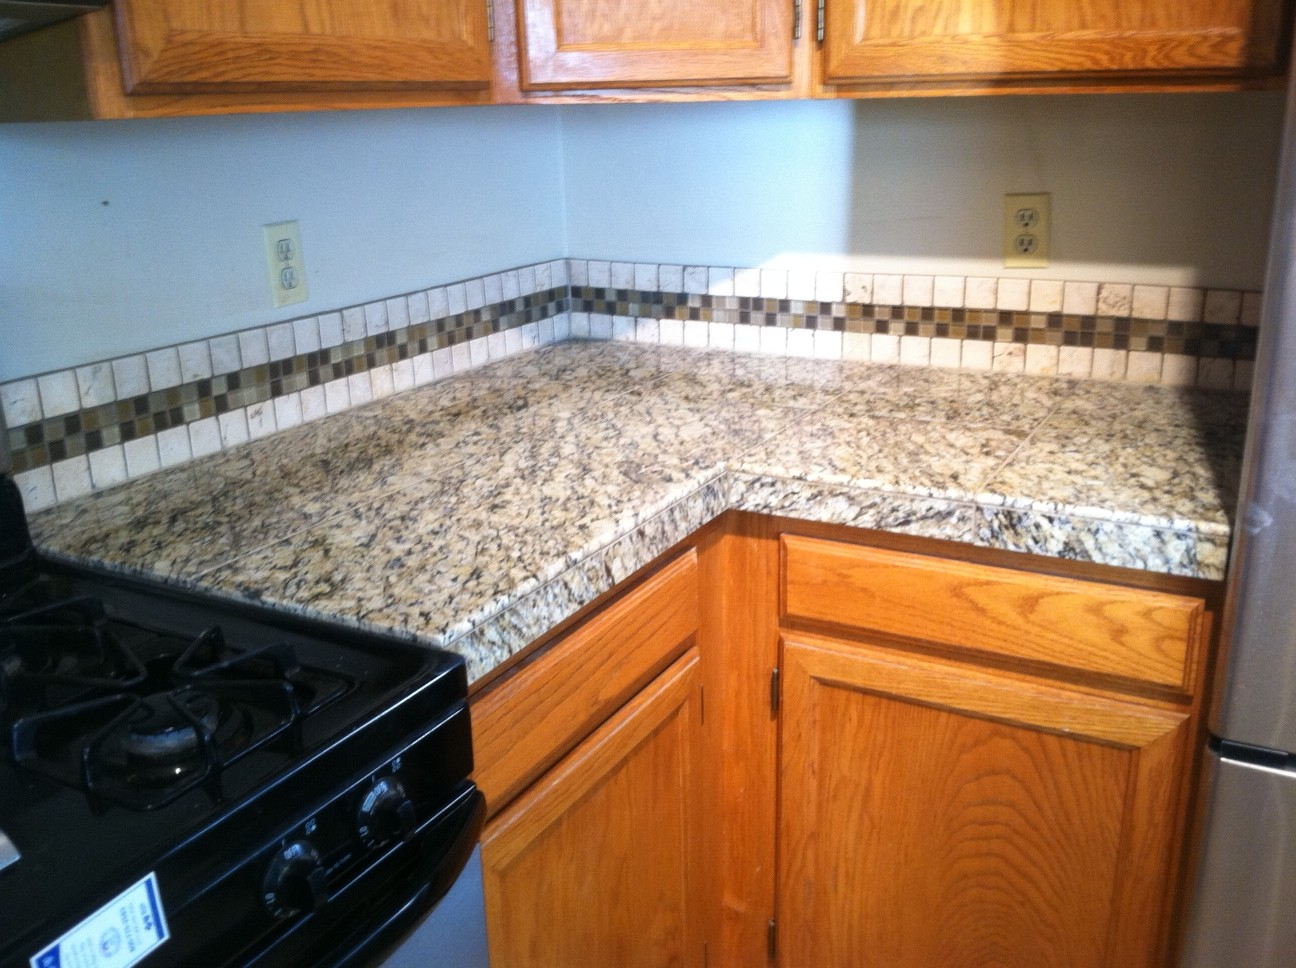 Santa Cecilia Granite with Tile Backsplash